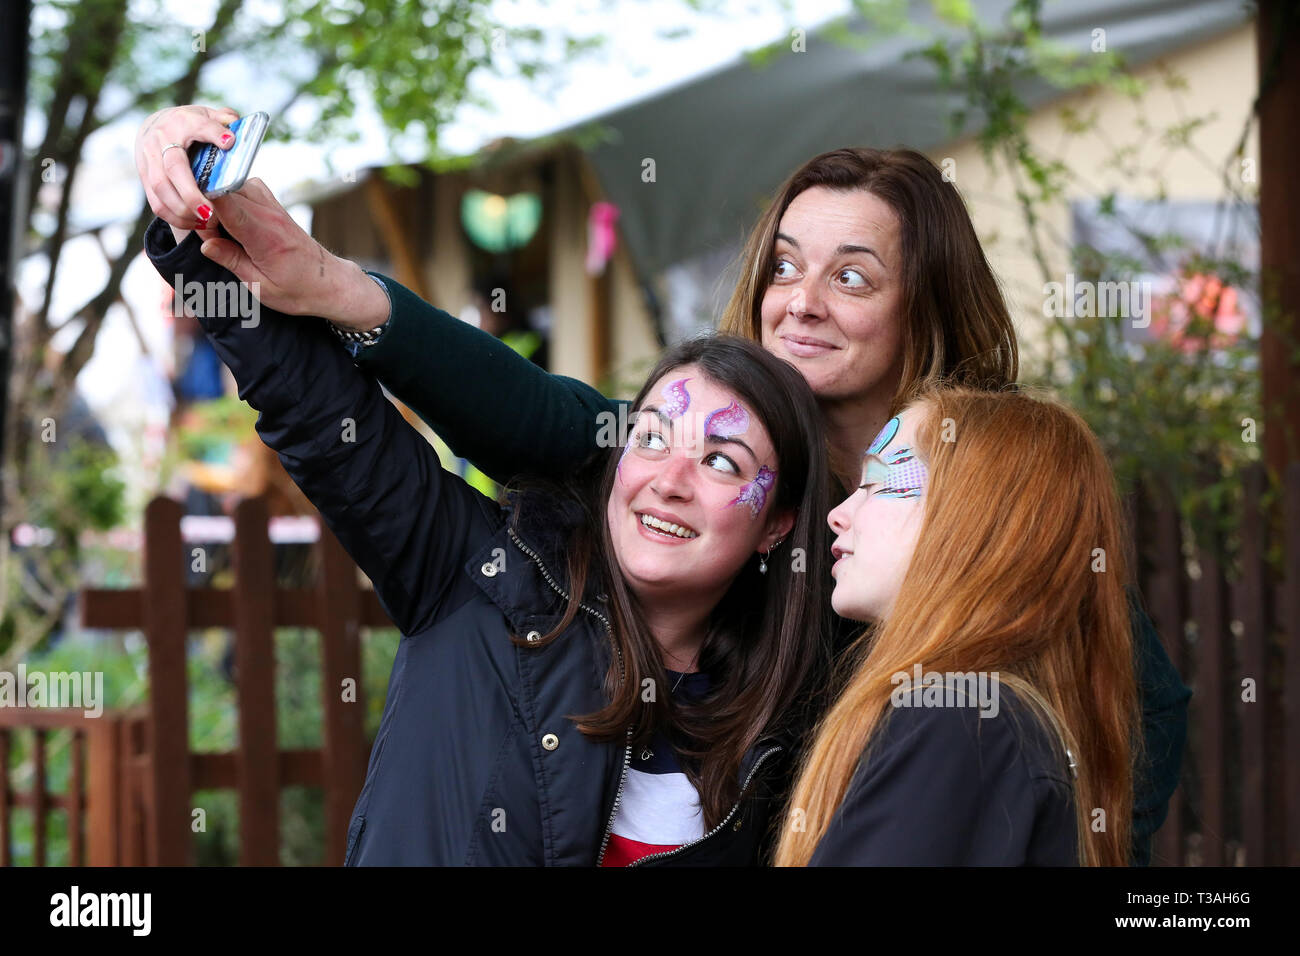 Spectators are seen taking a selfie before the Oxford vs Cambridge Goat Race in East London. Two pygmy goats compete during the 10th Oxford and Cambridge Goat Race at Spitalfields City Farm, Bethnal Green in East London. The annual fundraising event, which takes place at the same time as the Oxford and Cambridge boat race, where two goats, one named Hamish representing Oxford and the other Hugo representing Cambridge to be crowned King Billy. - Stock Image